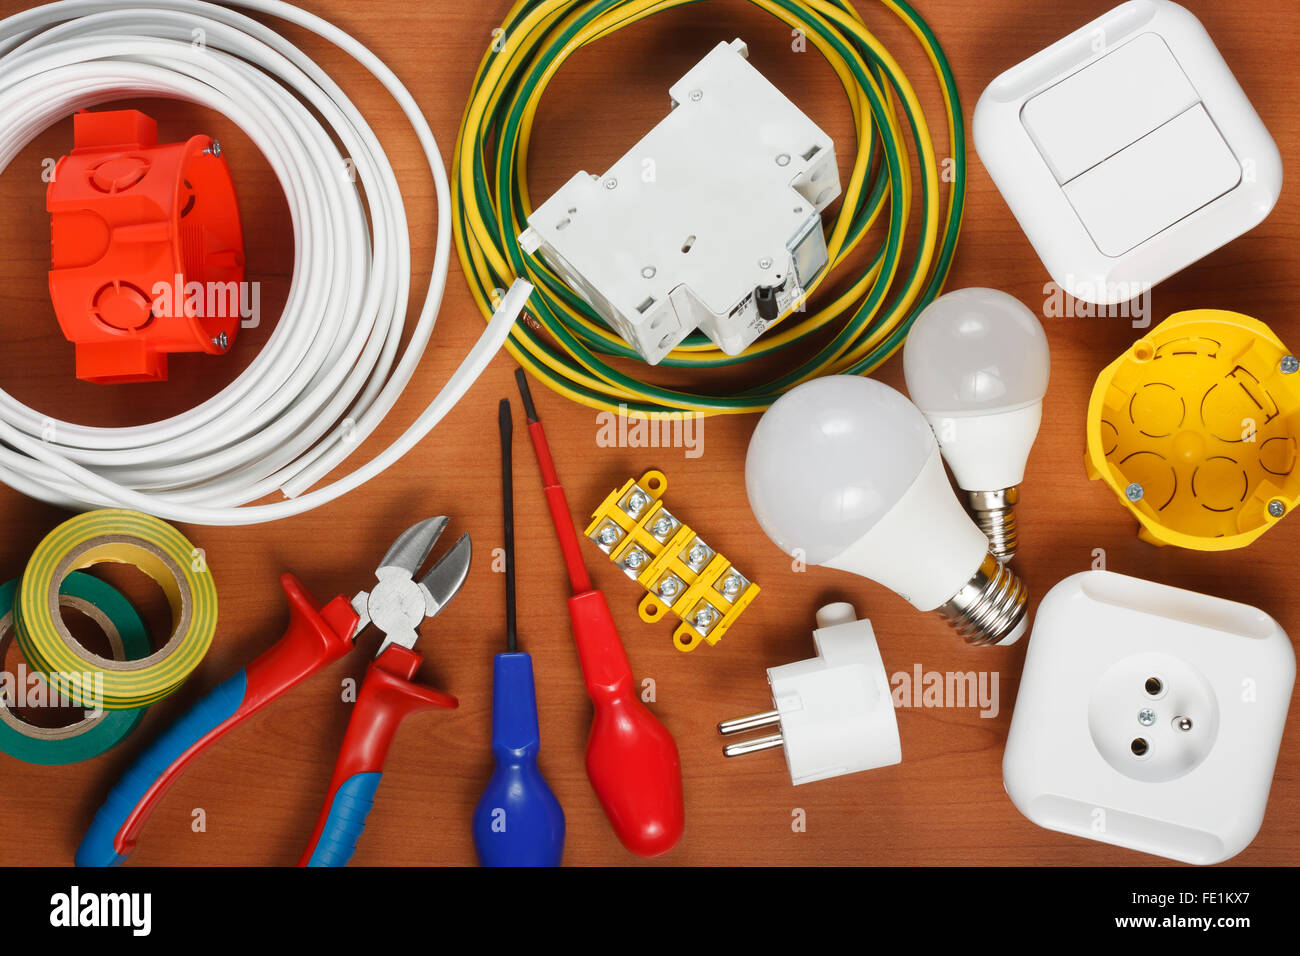 Electrical equipment and  tools on the desk - Stock Image